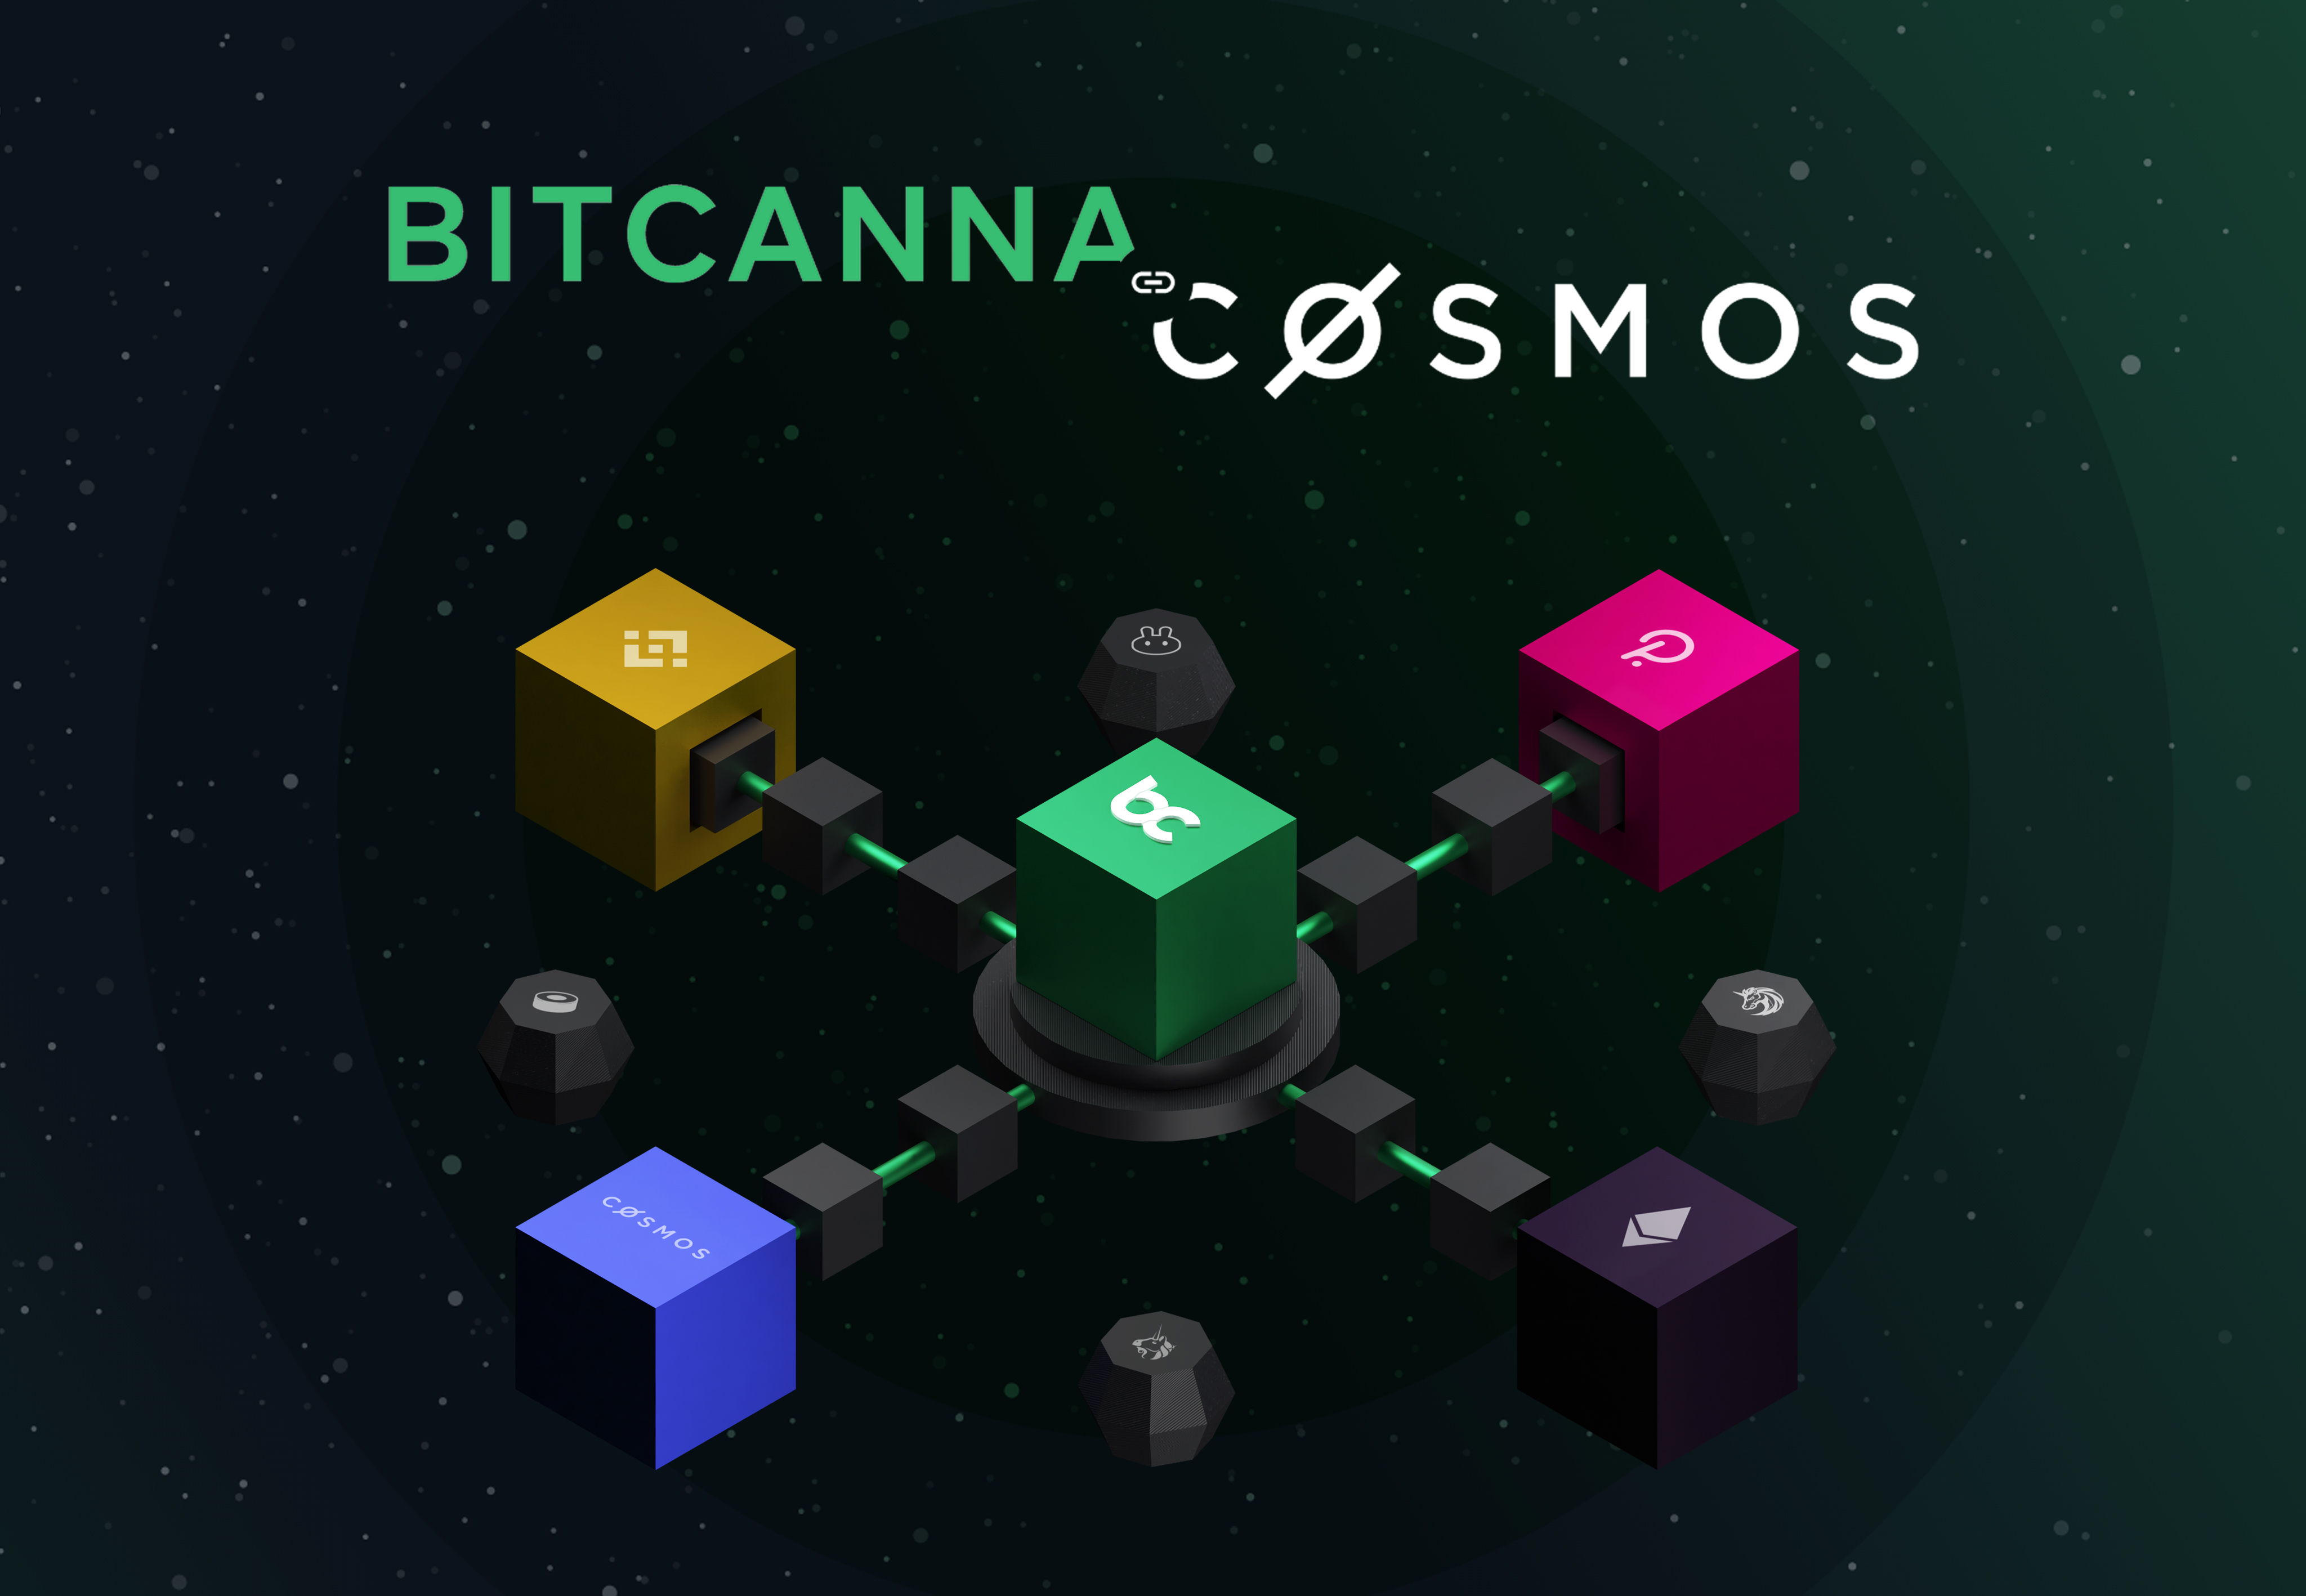 Bitcanna is updating to cosmos blockchain technology